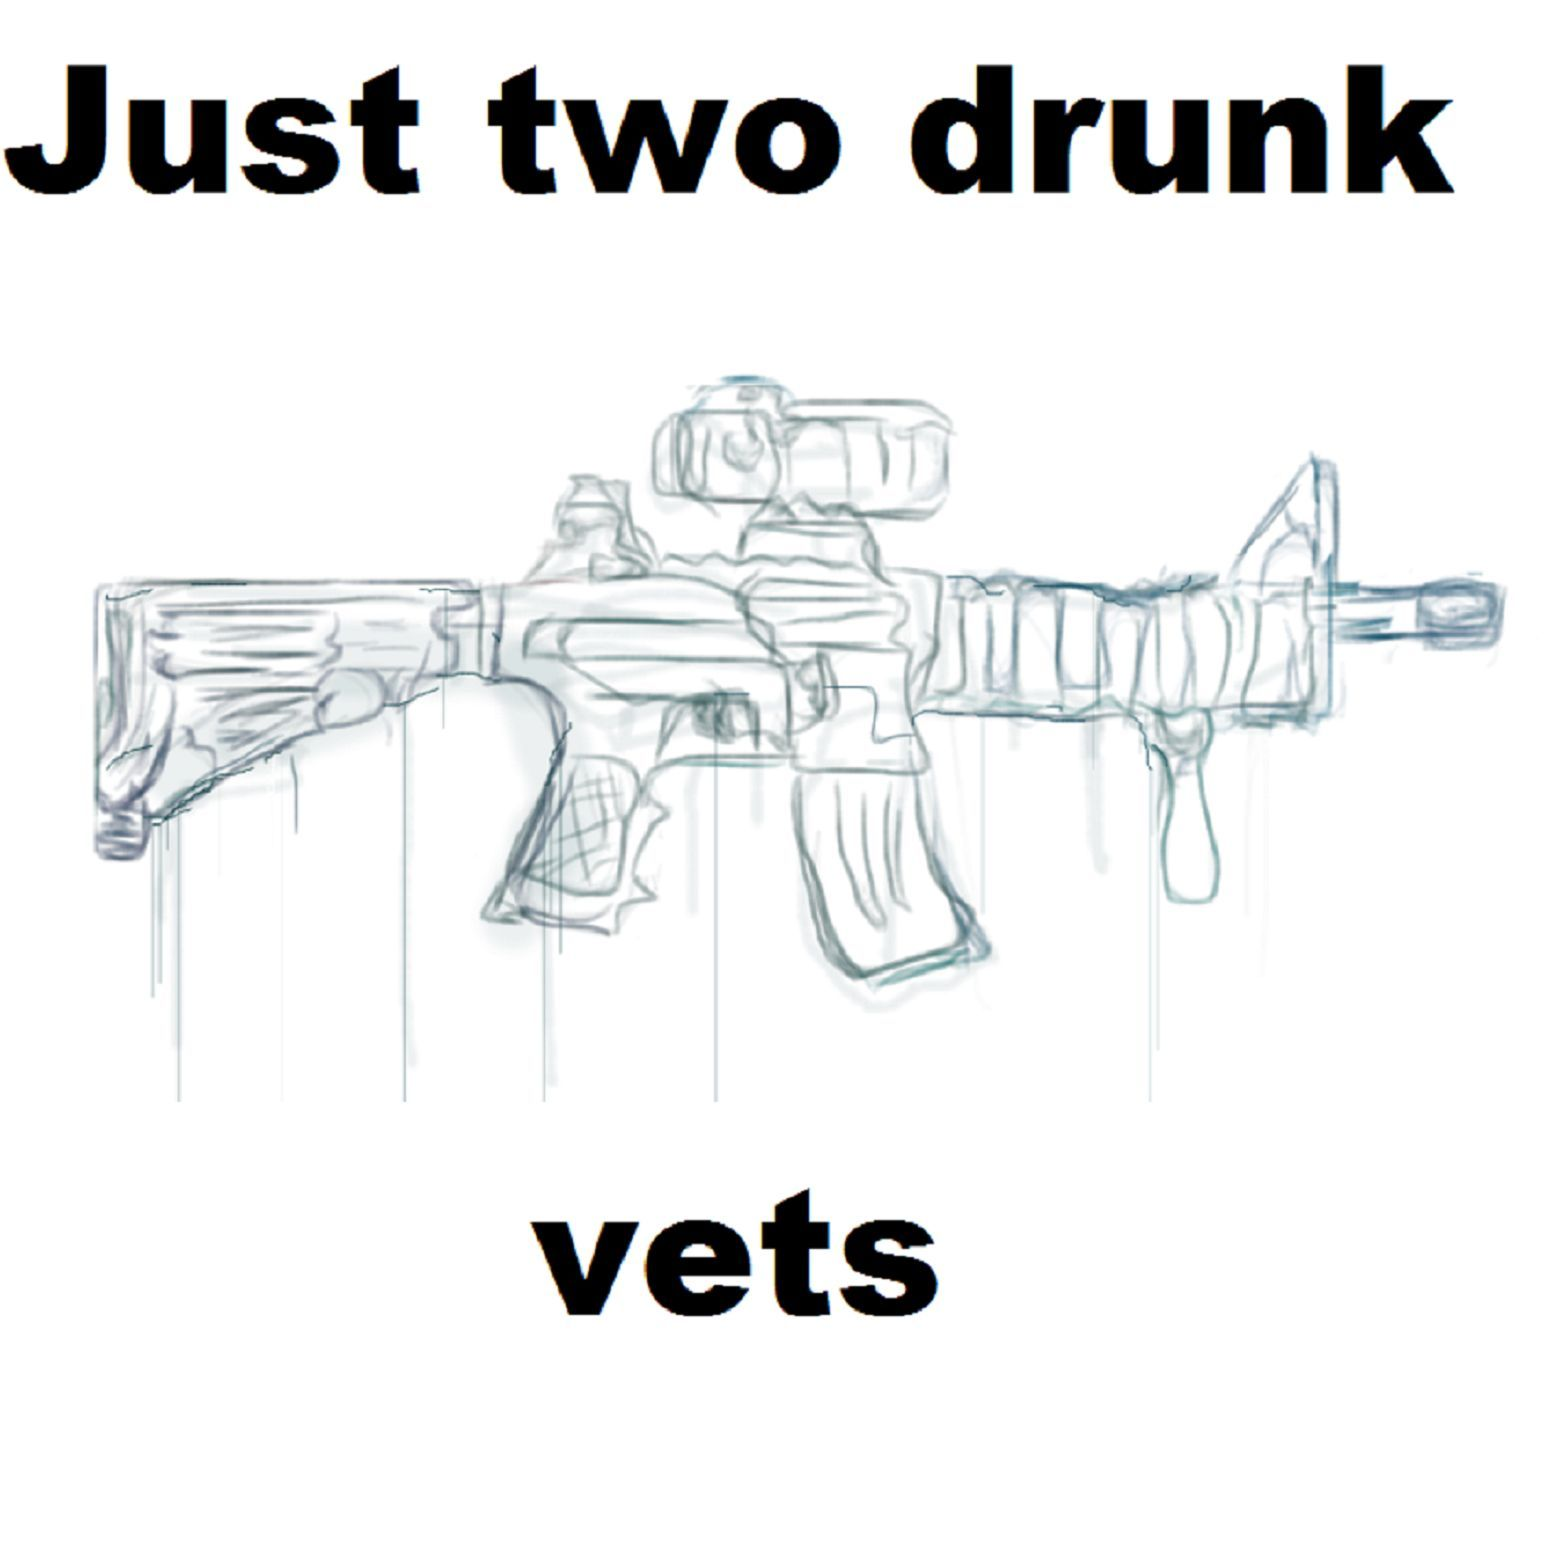 Just Two Drunk Vets